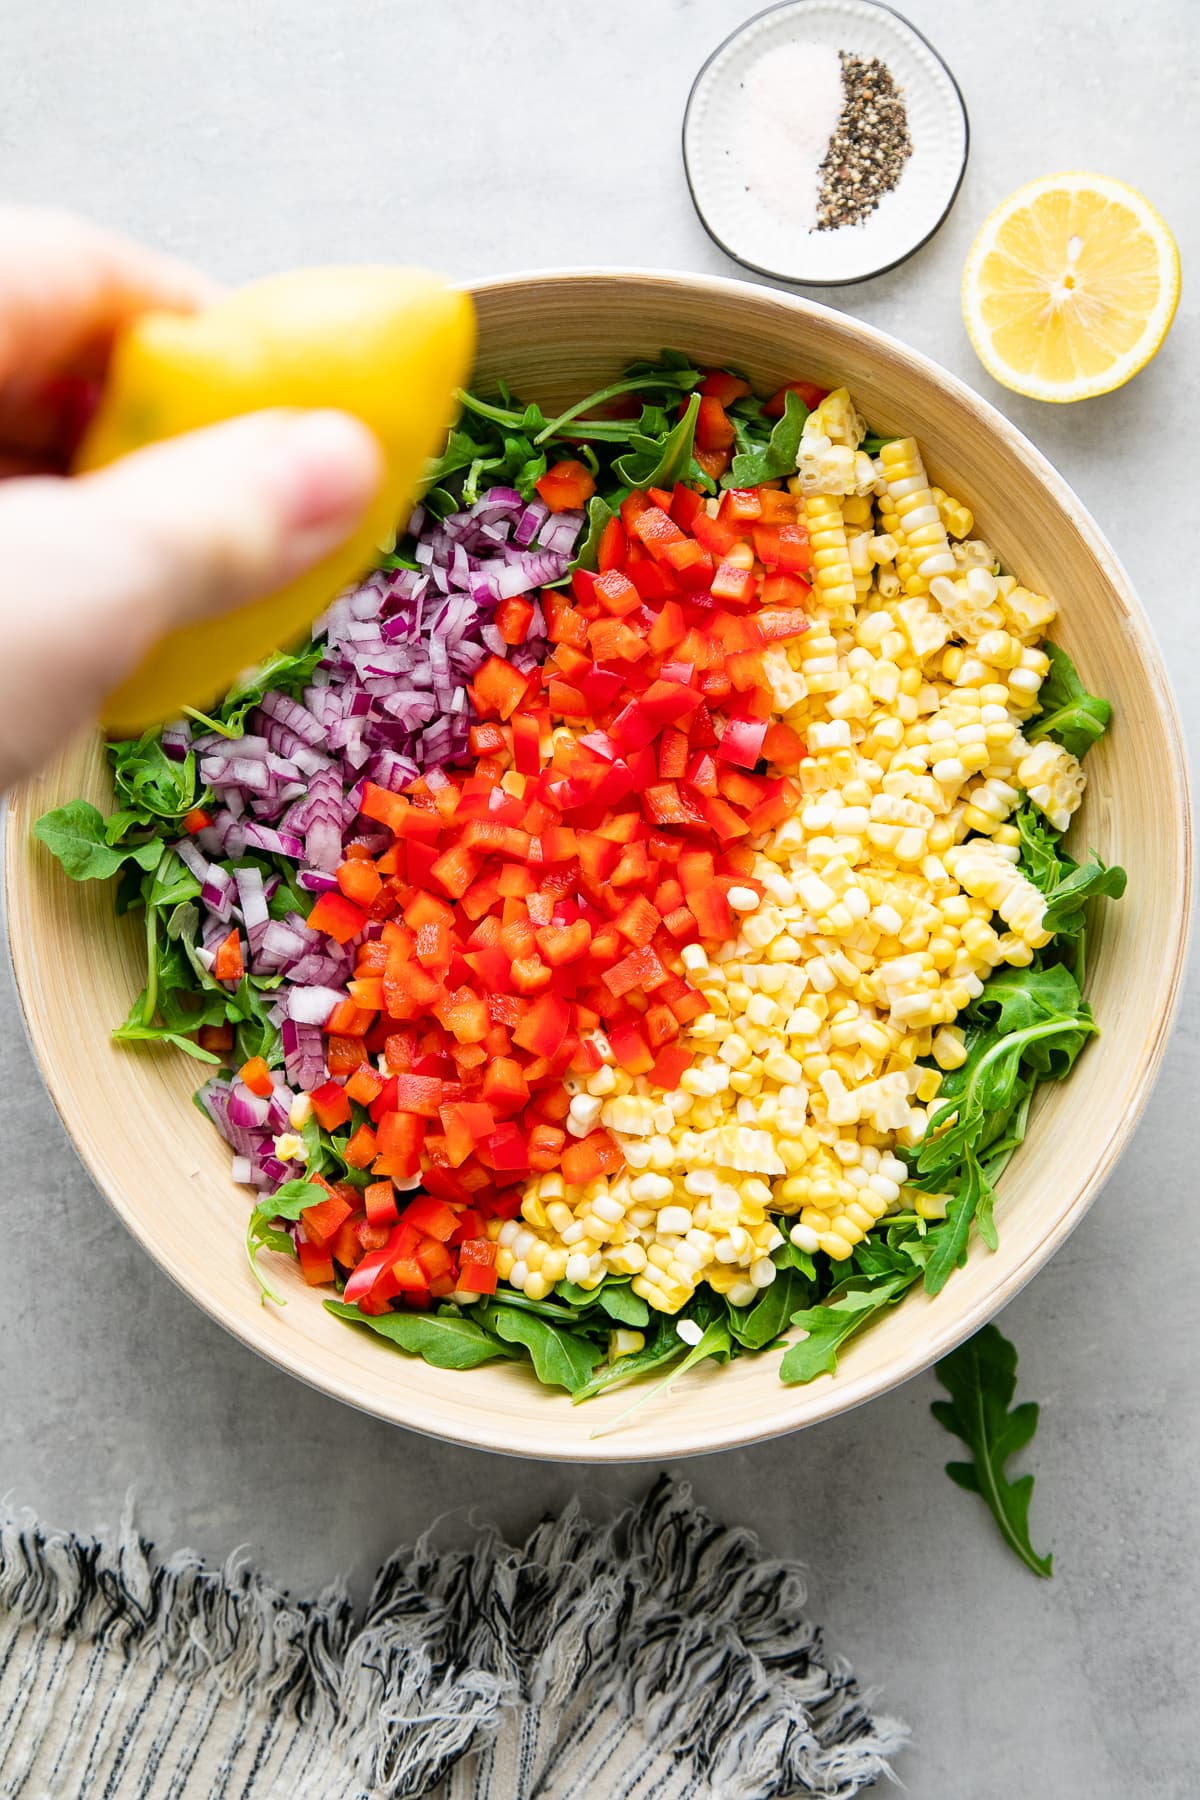 top down view of bowl with corn arugula salad ingredients added and lemon drizzled over top.